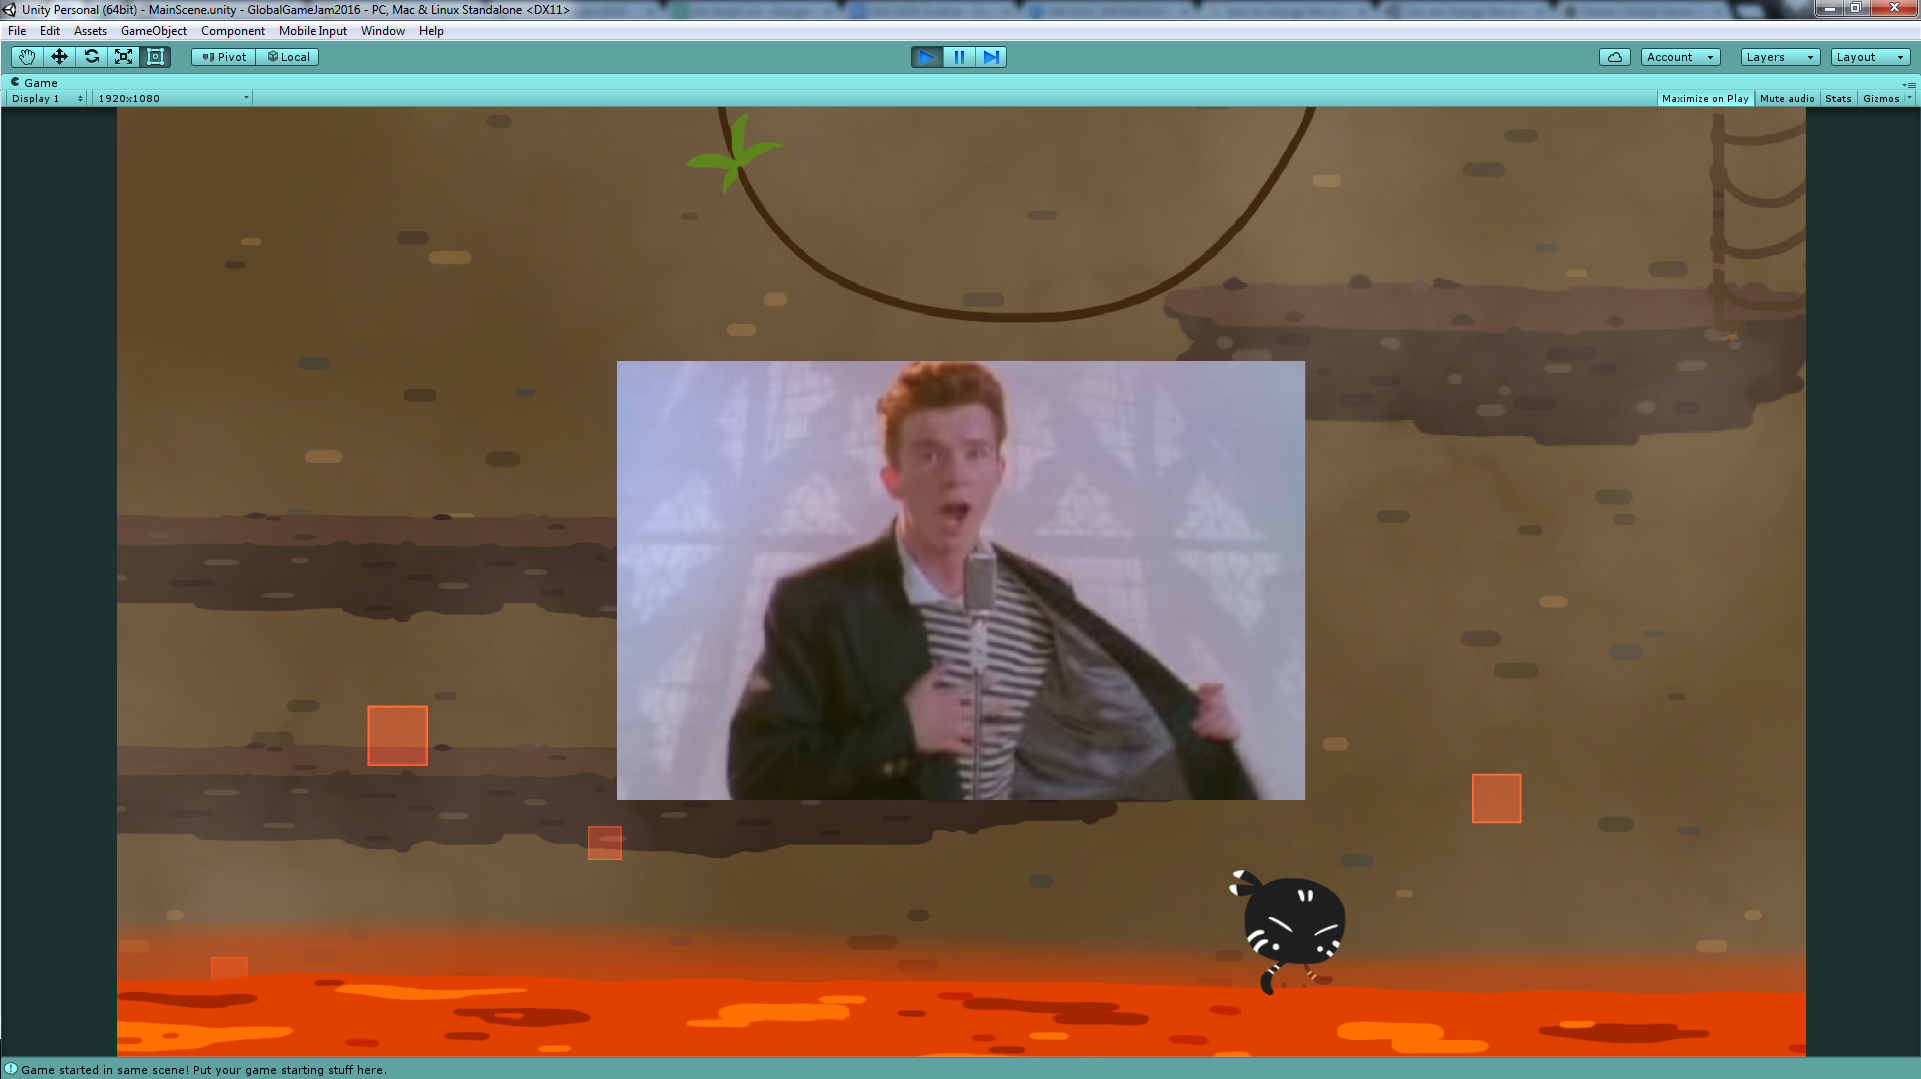 Replacing some assets by Rick Astley made us remember to put some assets